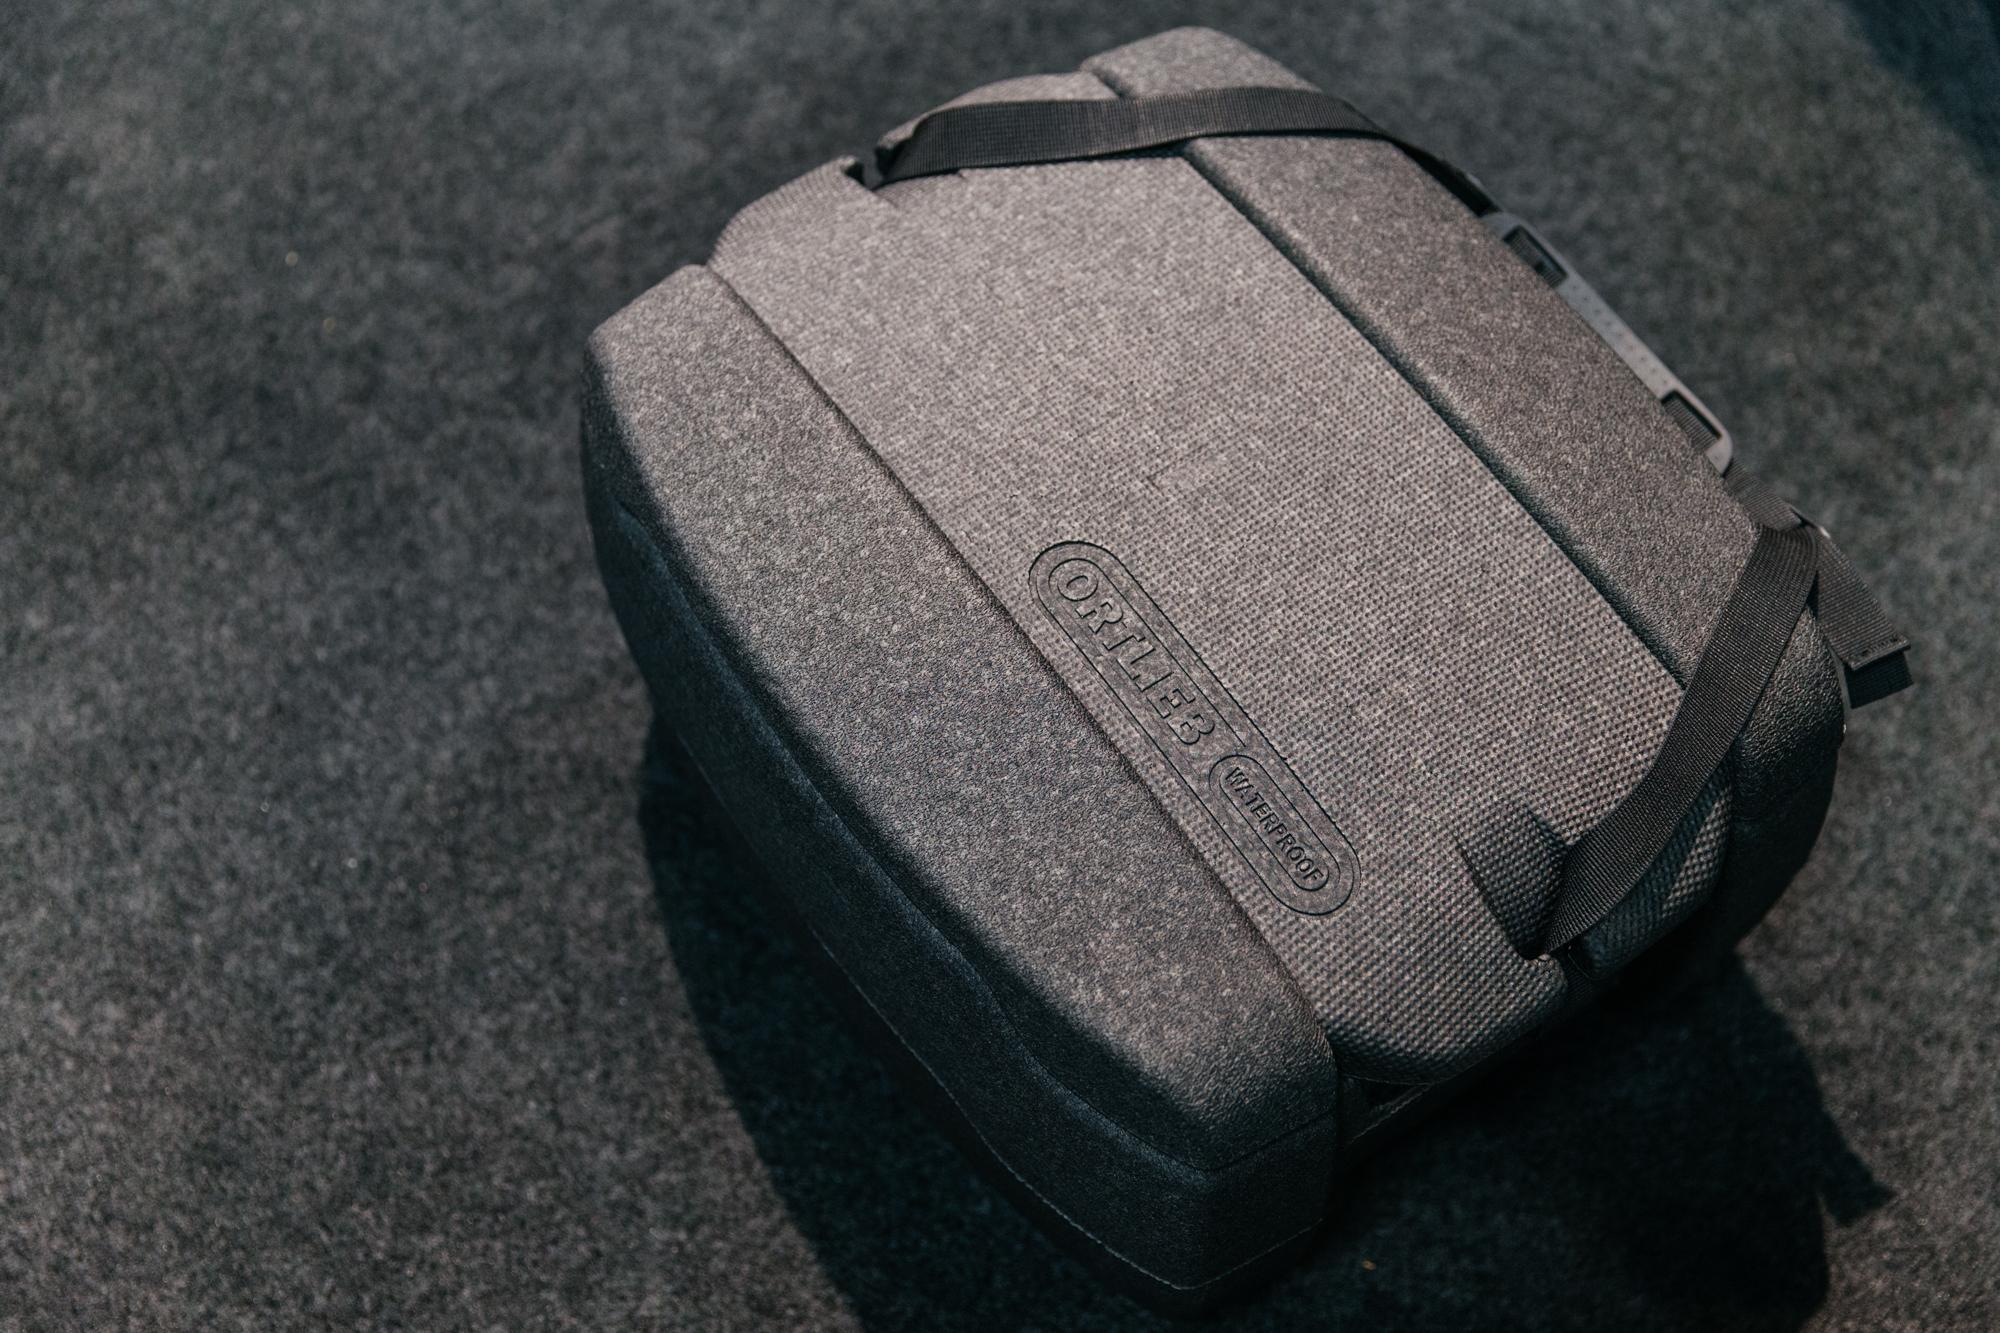 New Cool Cooler from Ortlieb